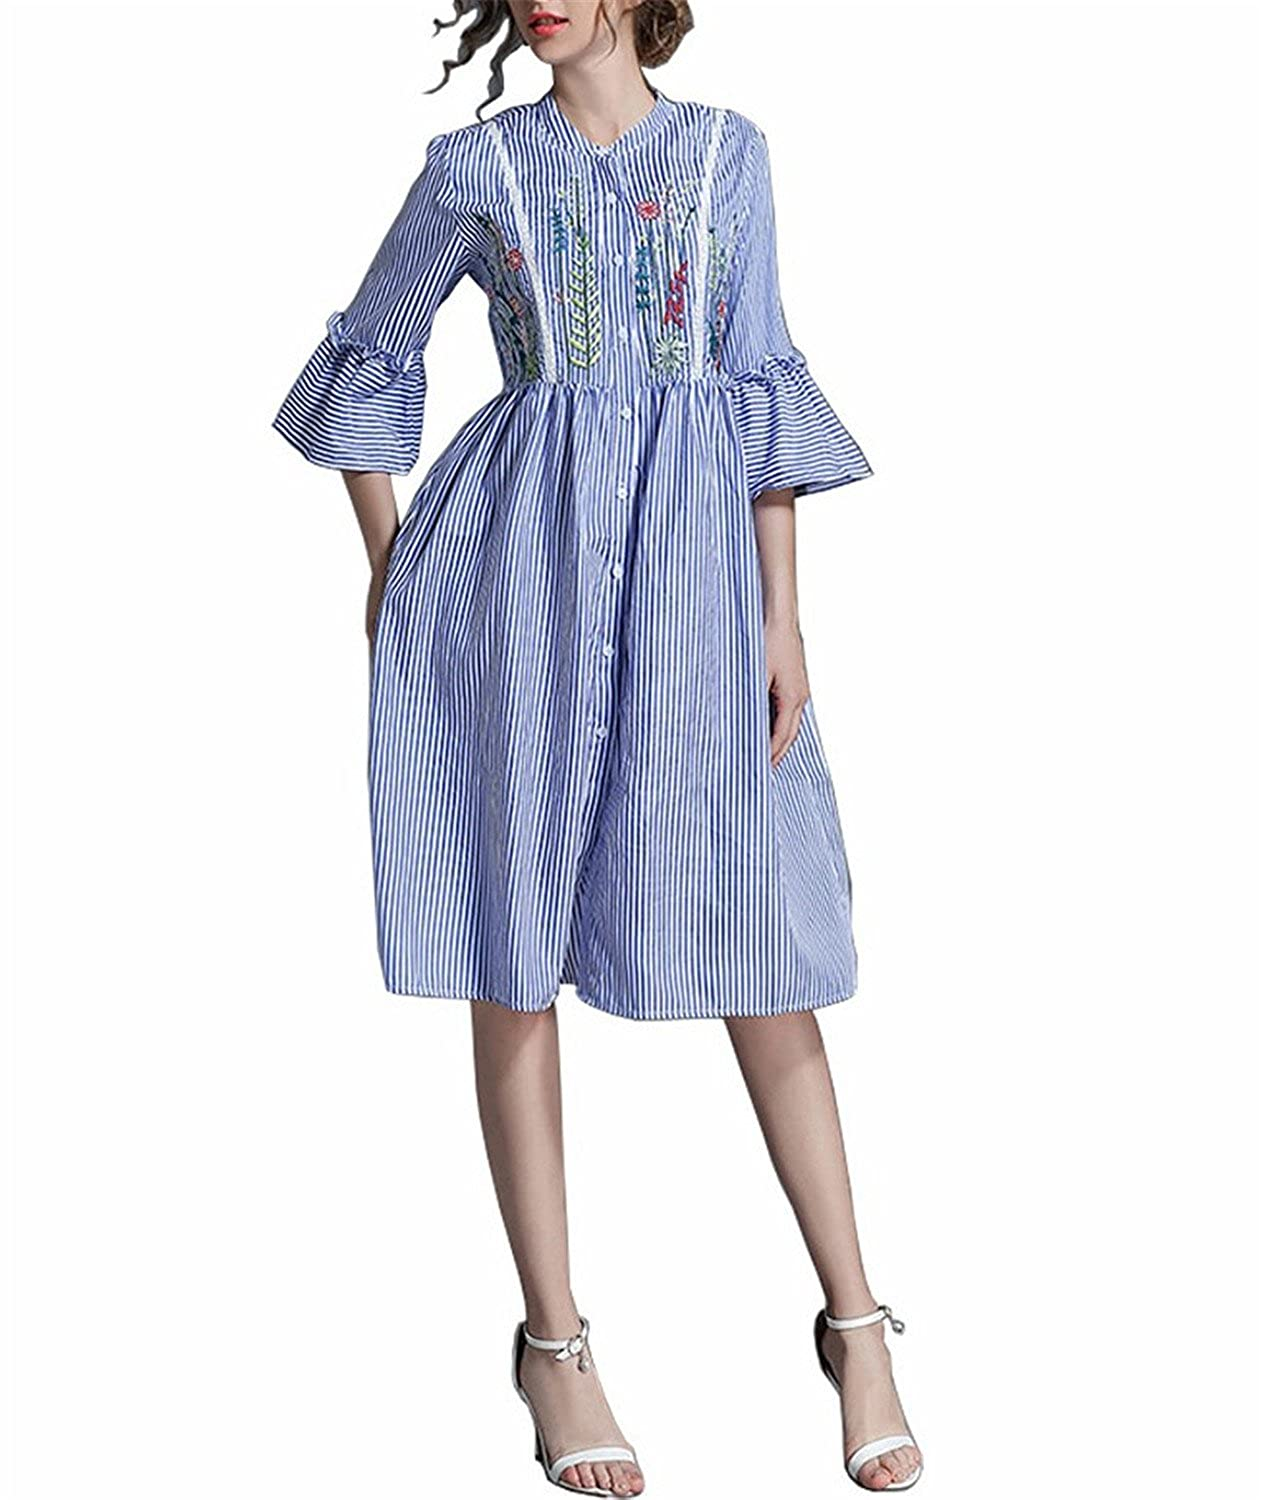 3bdb708451997 Henraly Simgent Blue Striped Empire Waist Floral Embroidery Dress ...